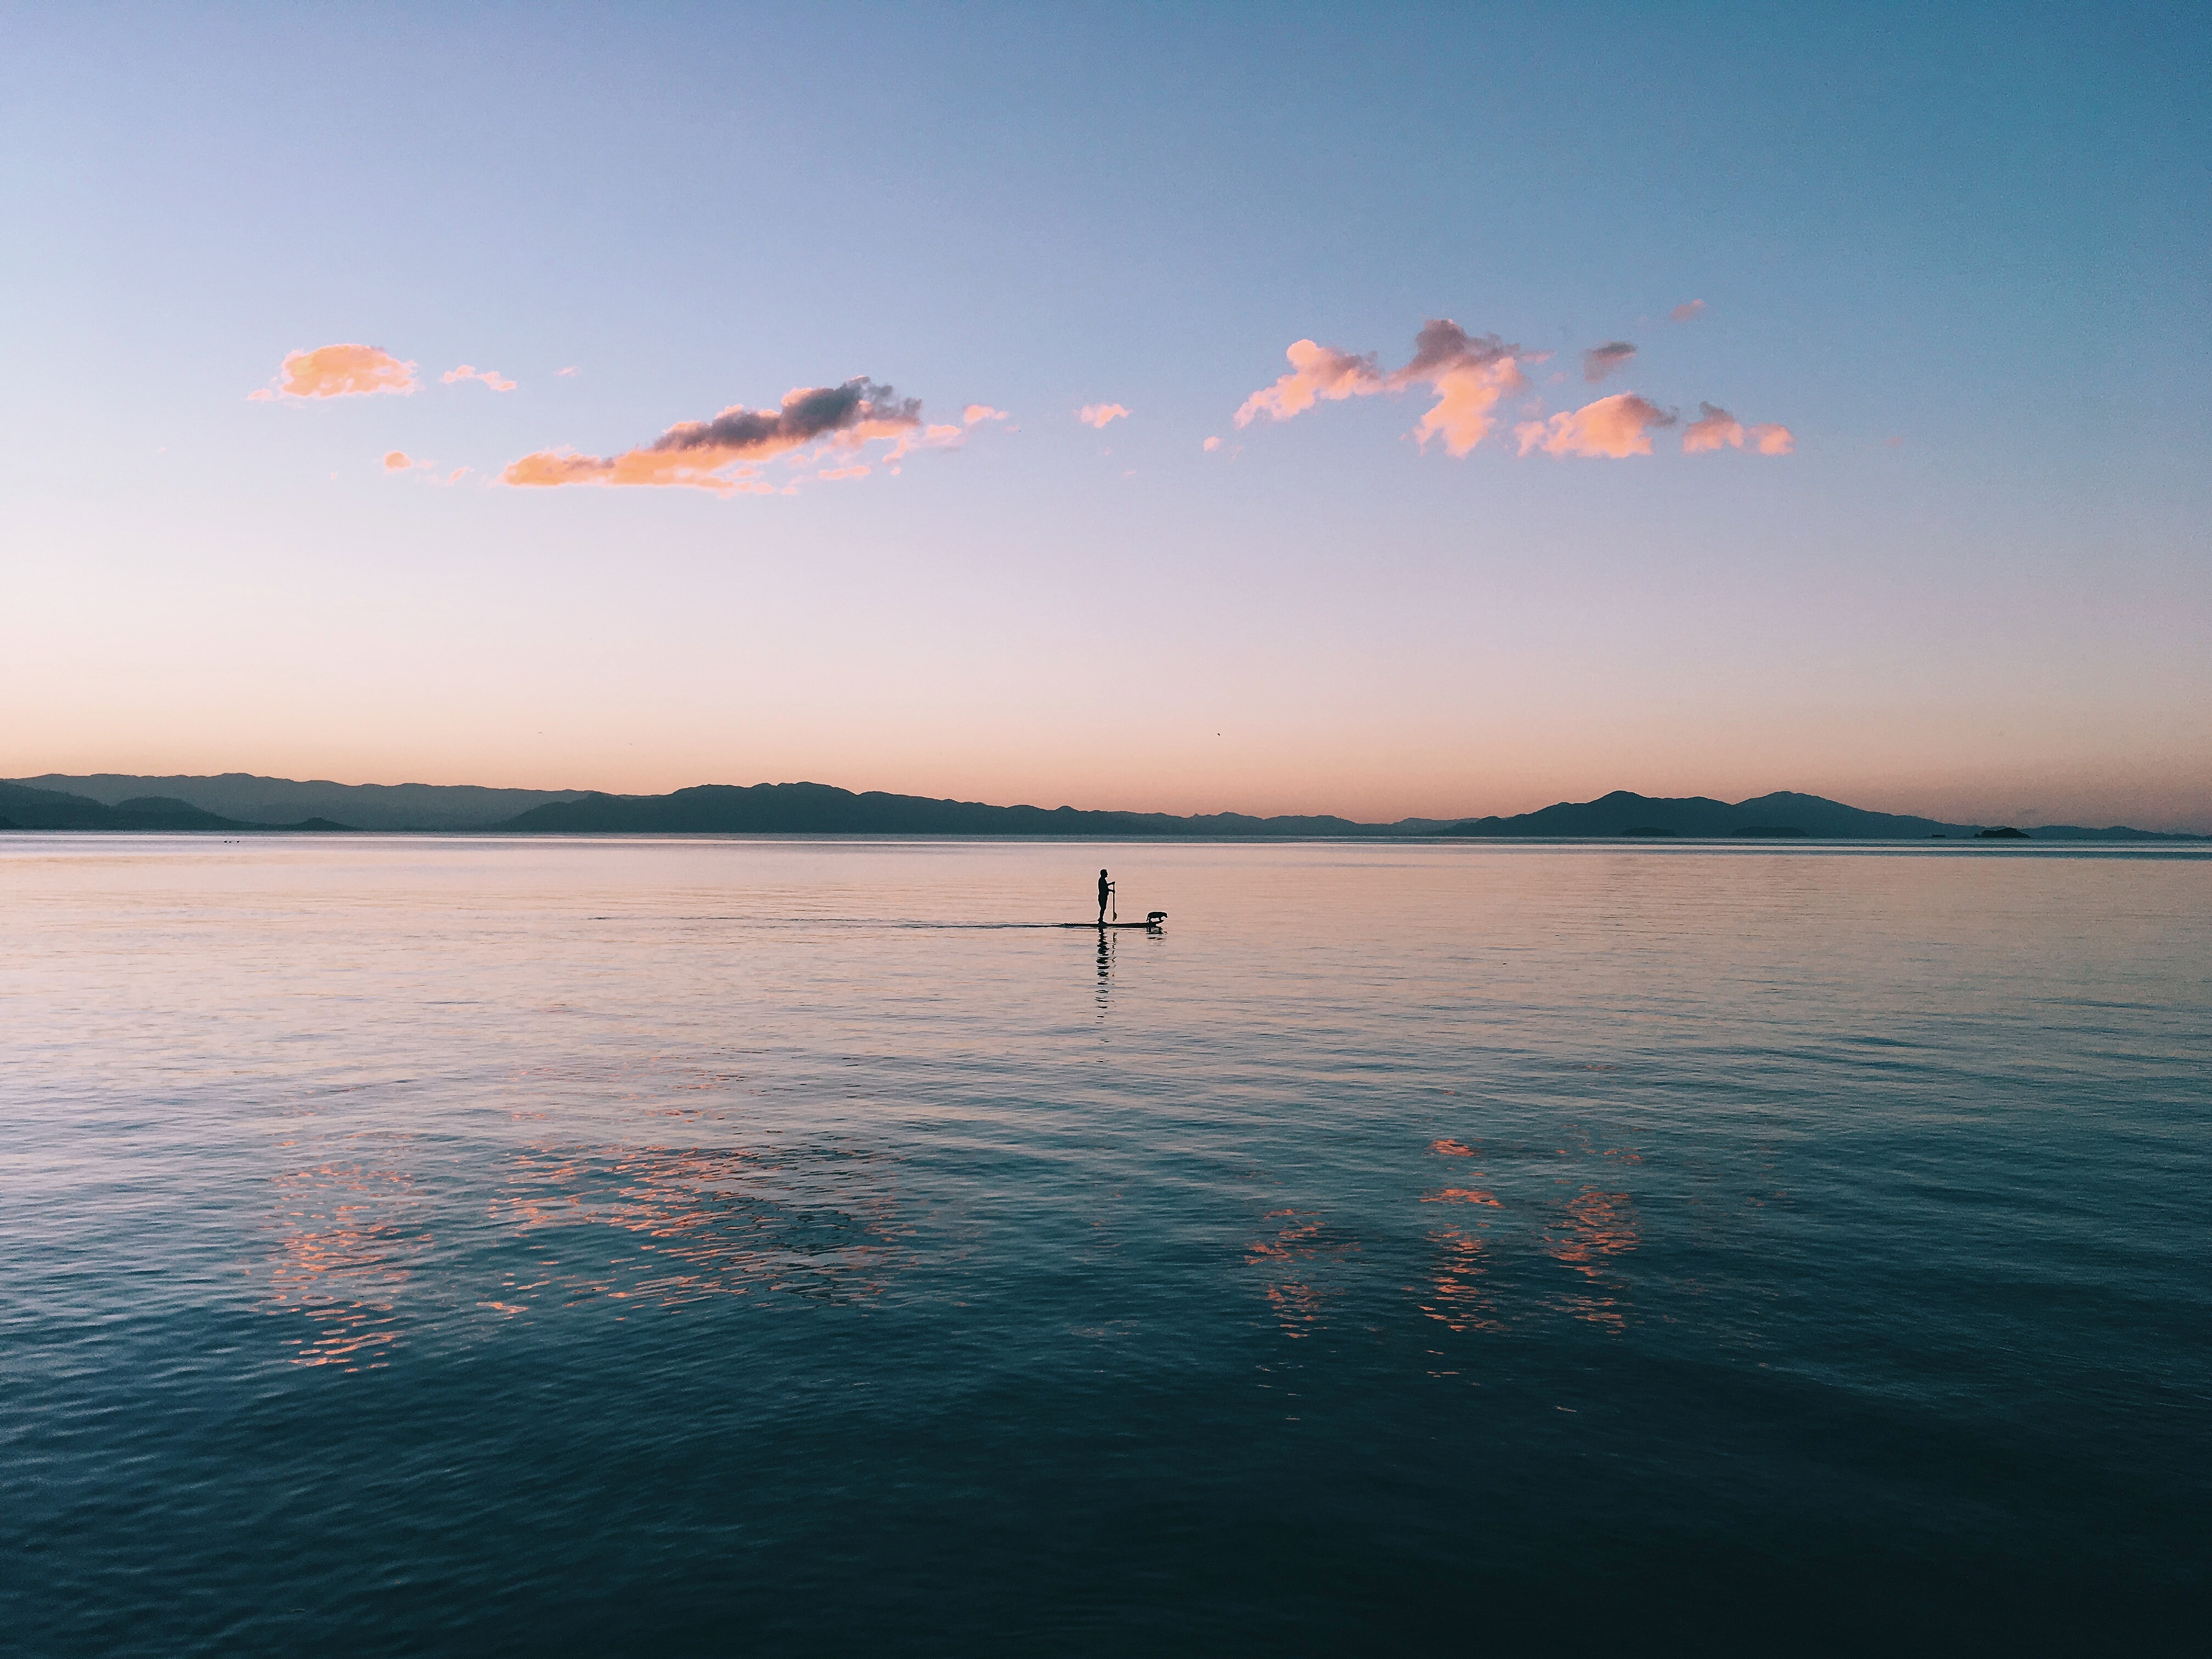 A person and paddle board on the water with a hilly horizon during dawn-or-dusk and a clear blue sky except for a small cluster of cloud